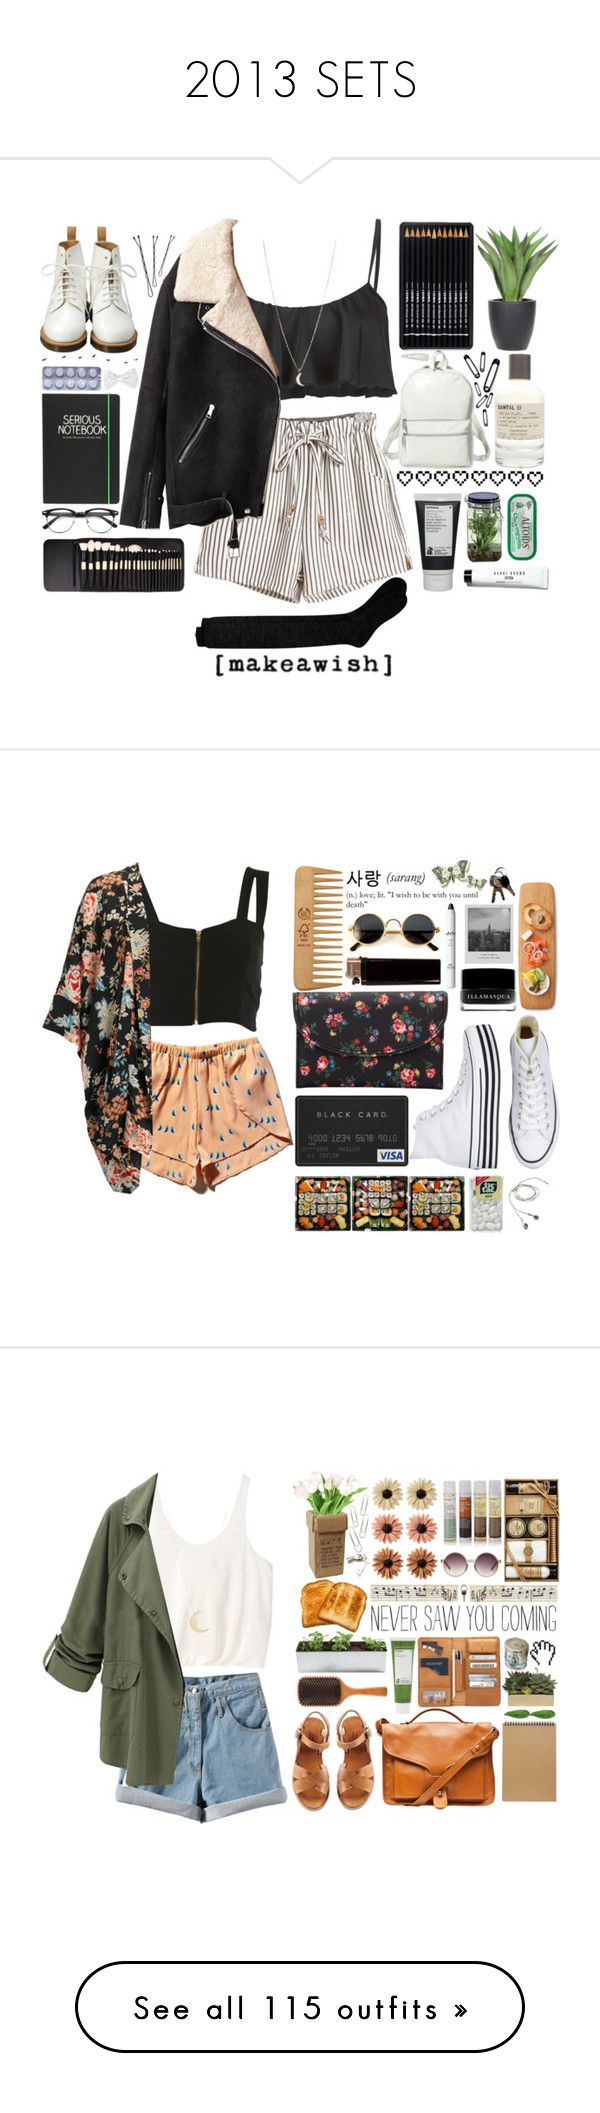 """""""2013 SETS"""" by c-hristinep ❤ liked on Polyvore featuring Bobbi Brown Cosmetics, Reef, Korres, Happy Jackson, Alöe, Dr. Martens, Theory, Acne Studios, HotSquash and Le Labo"""